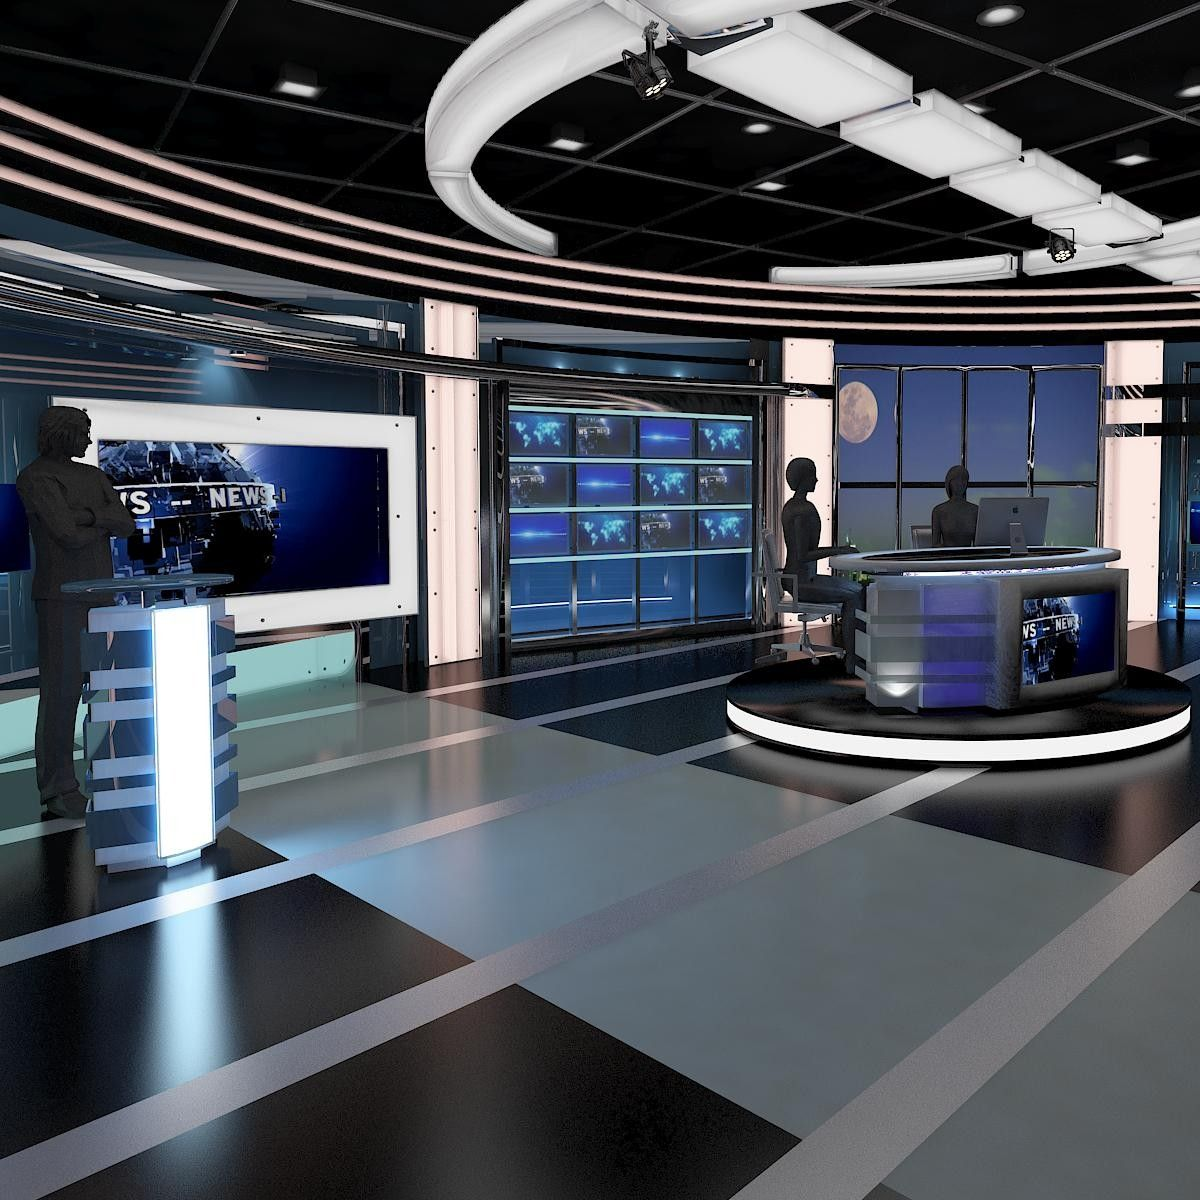 Max tv virtual stage news studio 3d virtual stage tv for 3d virtual room designer